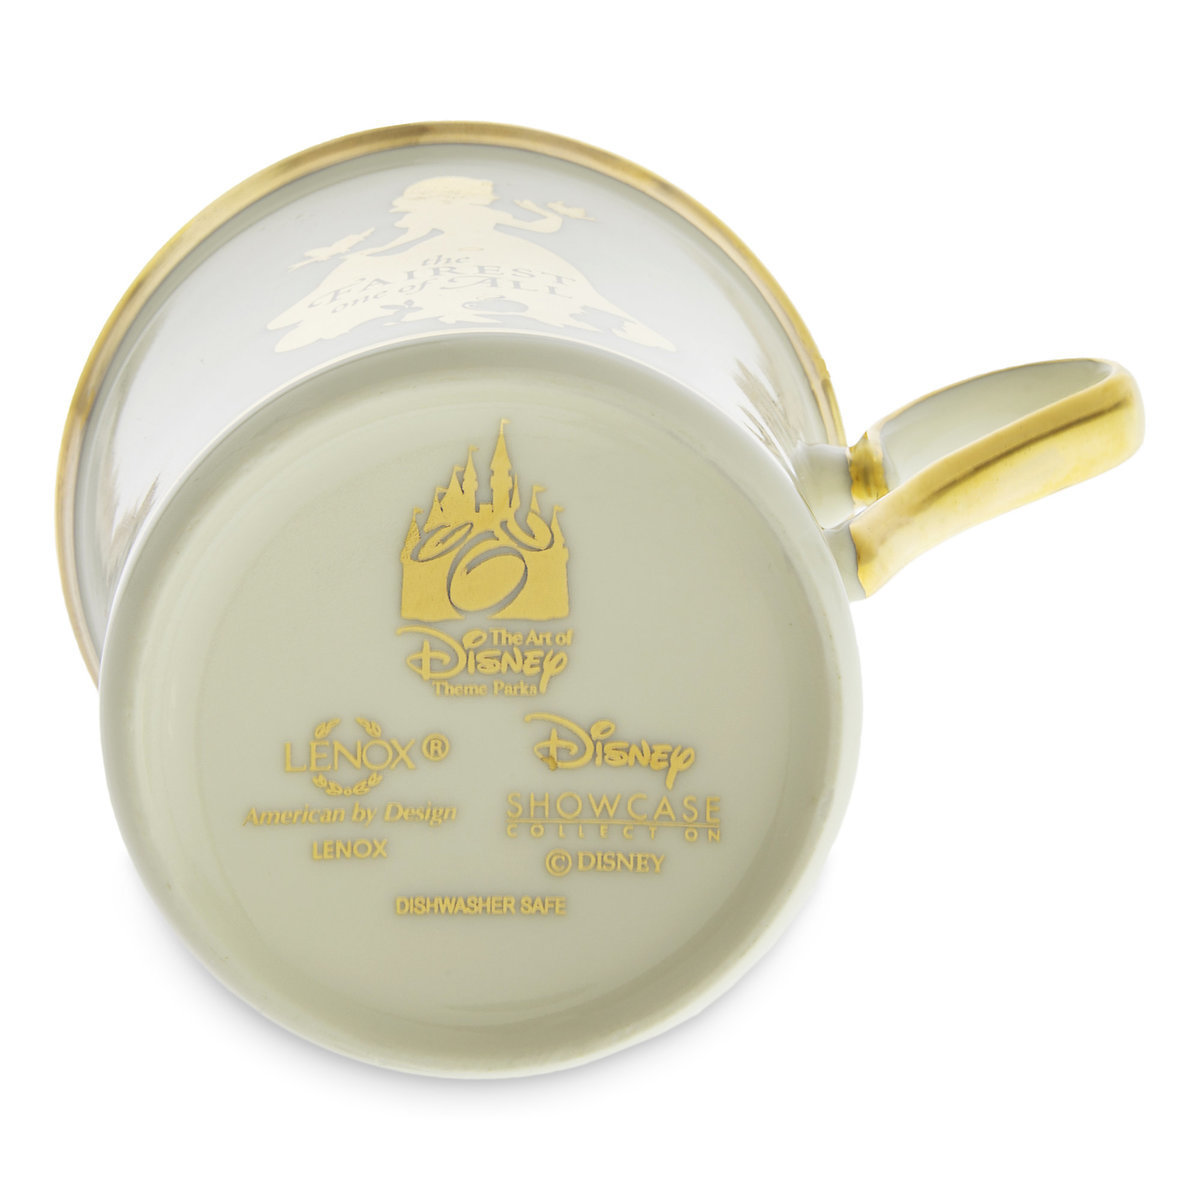 Snow White Princess Mug by Lenox